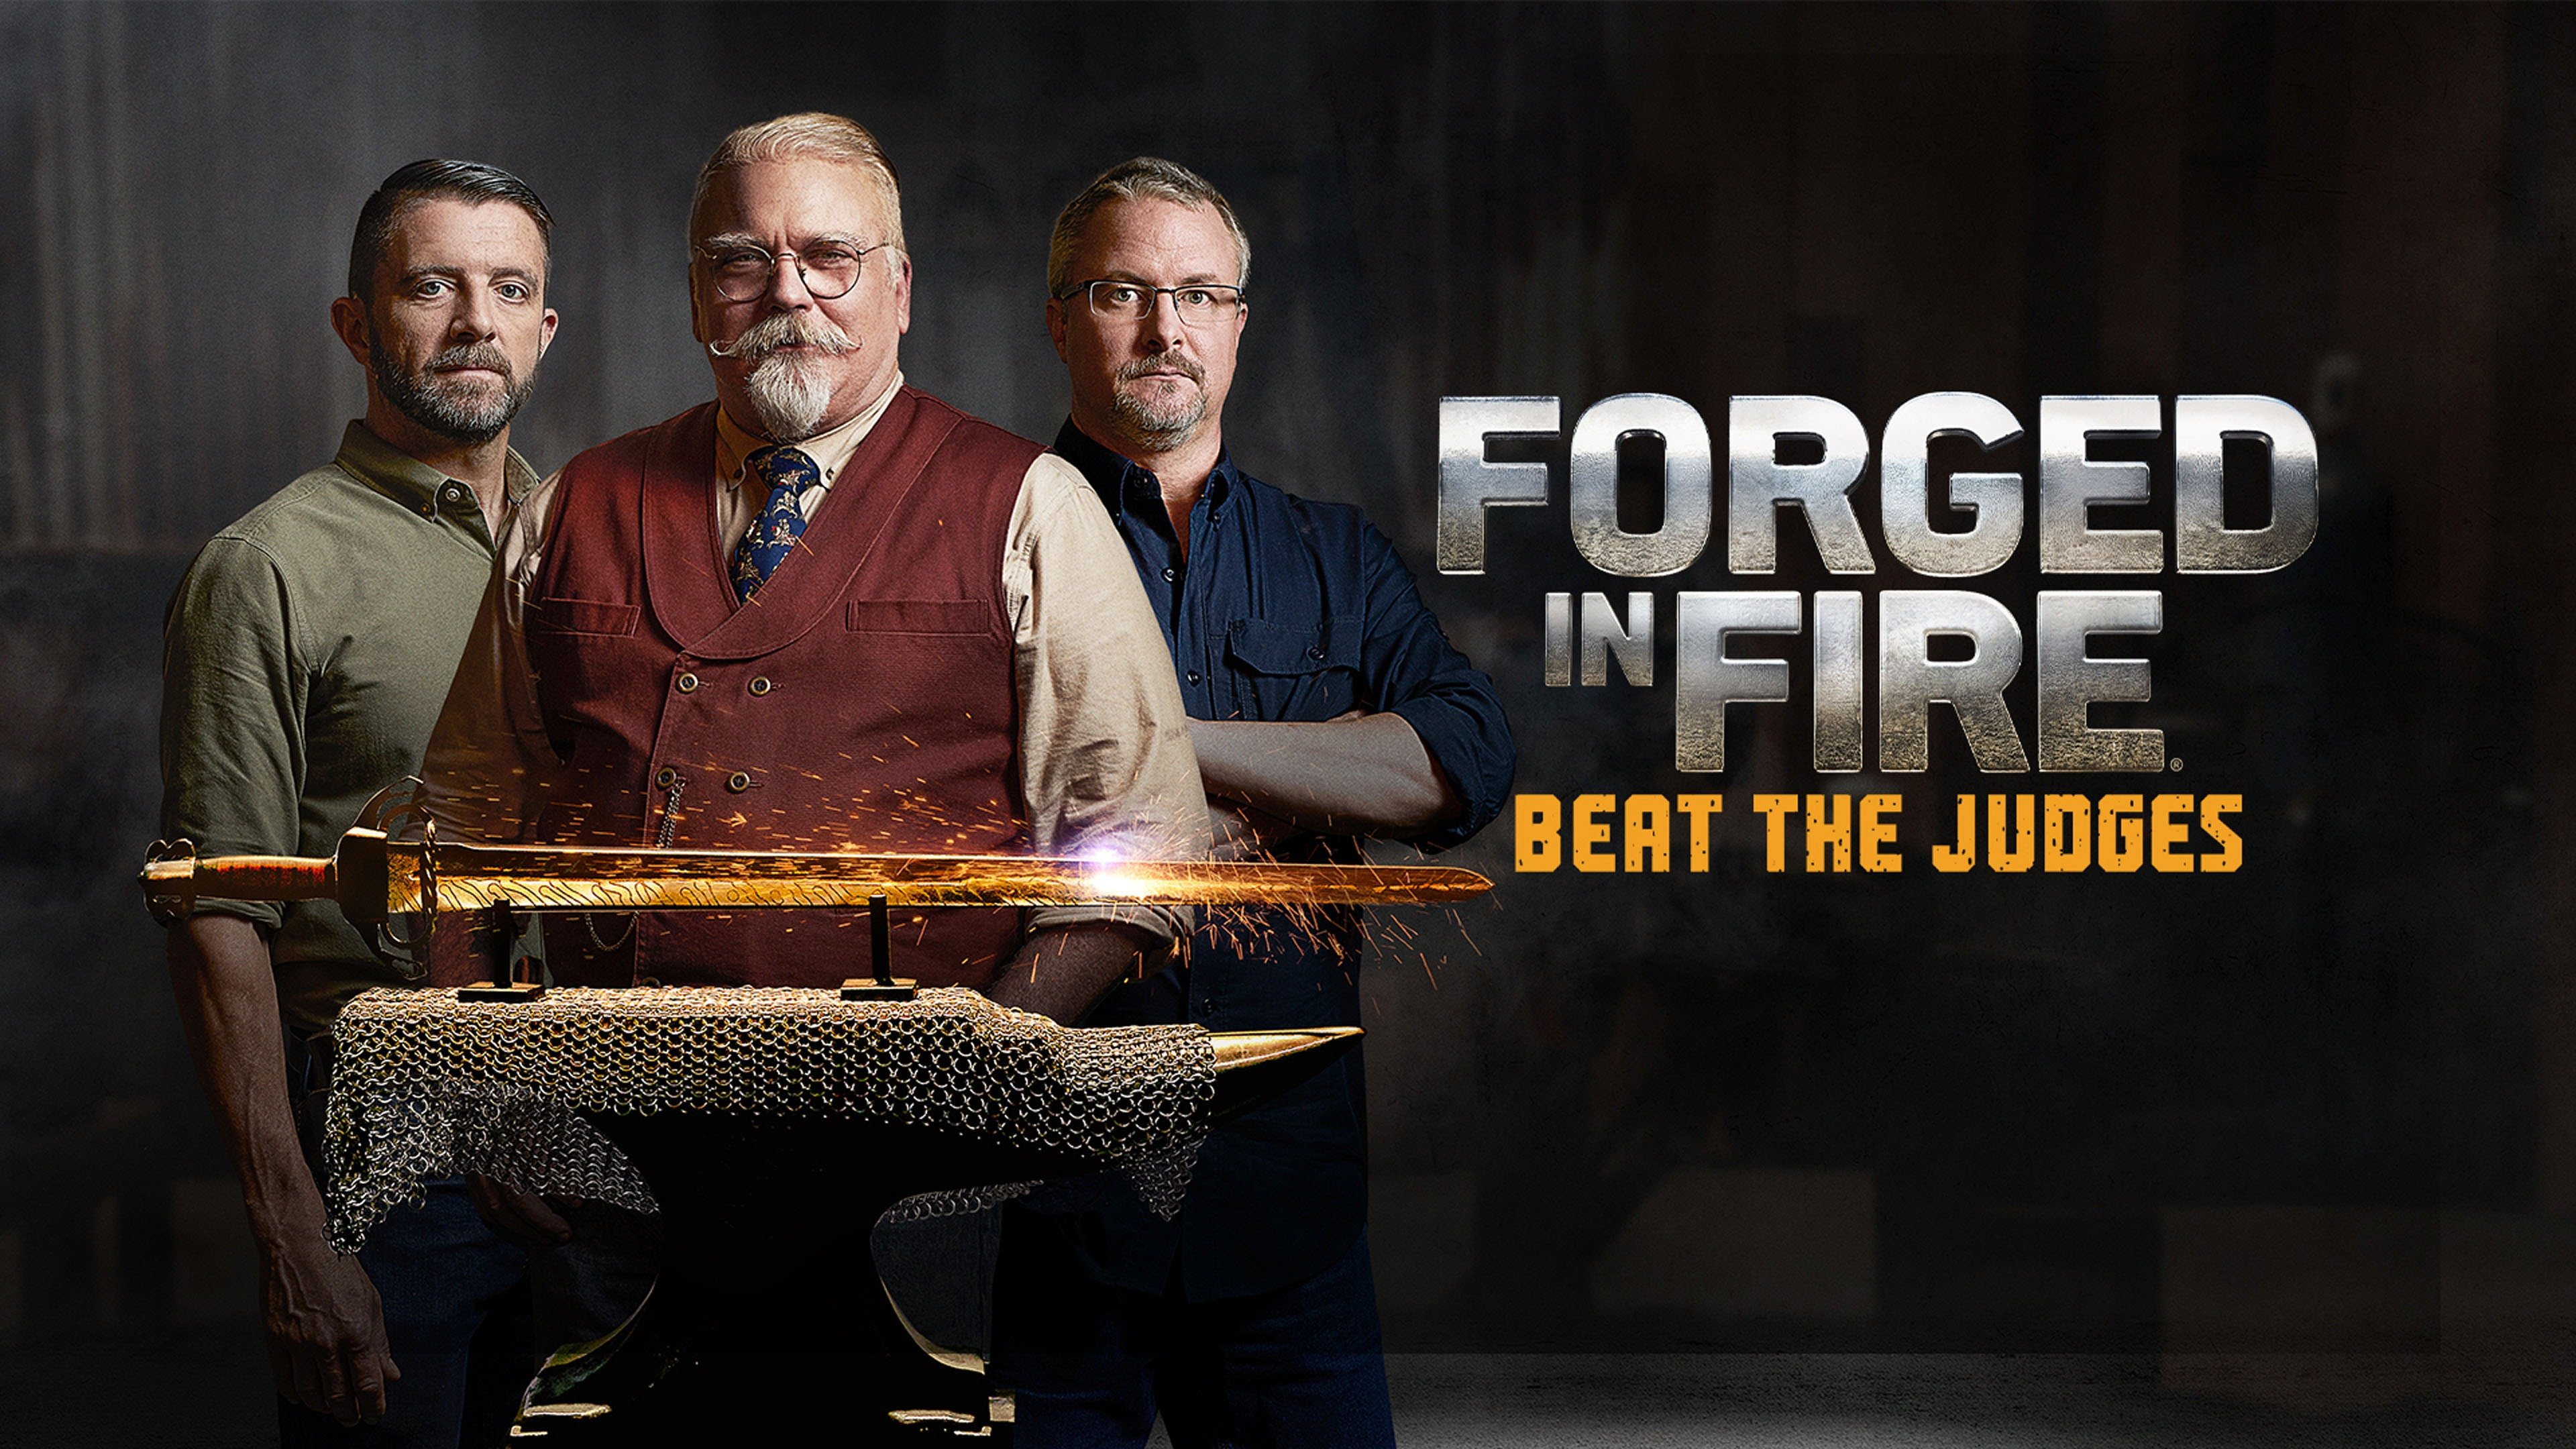 Forged in Fire: Beat the Judges